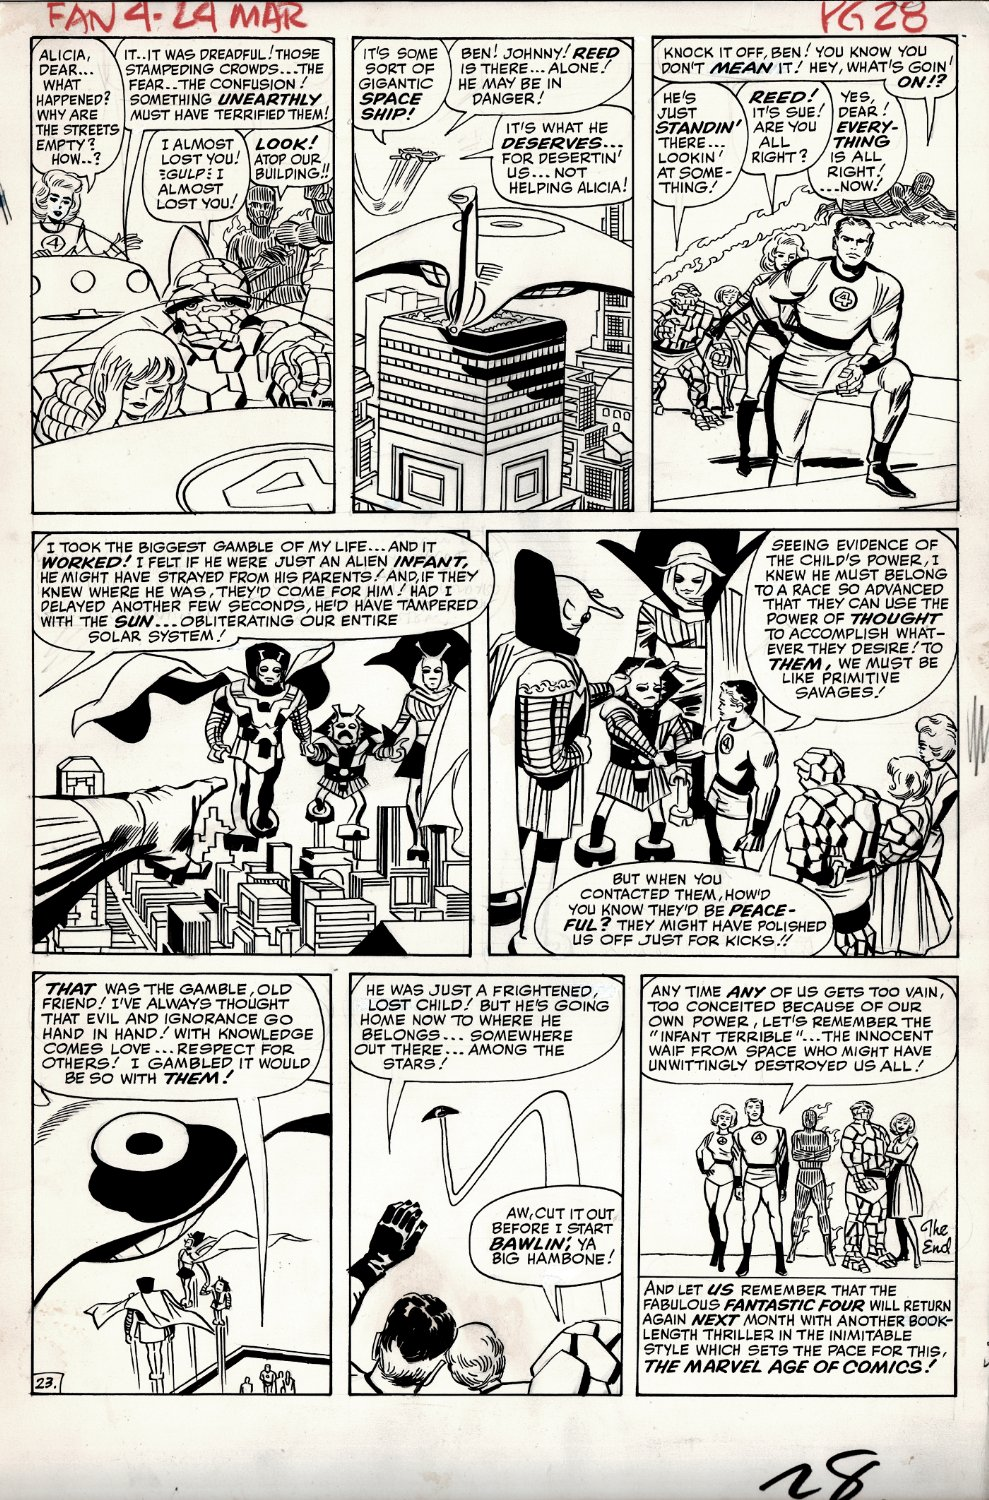 Fantastic Four #24 p 23 (THING, HUMAN TORCH, MR. FANTASTIC, INVISIBLE GIRL, INFANT TERRIBLE THROUGHOUT ENTIRE PAGE!) Large Art - 1963